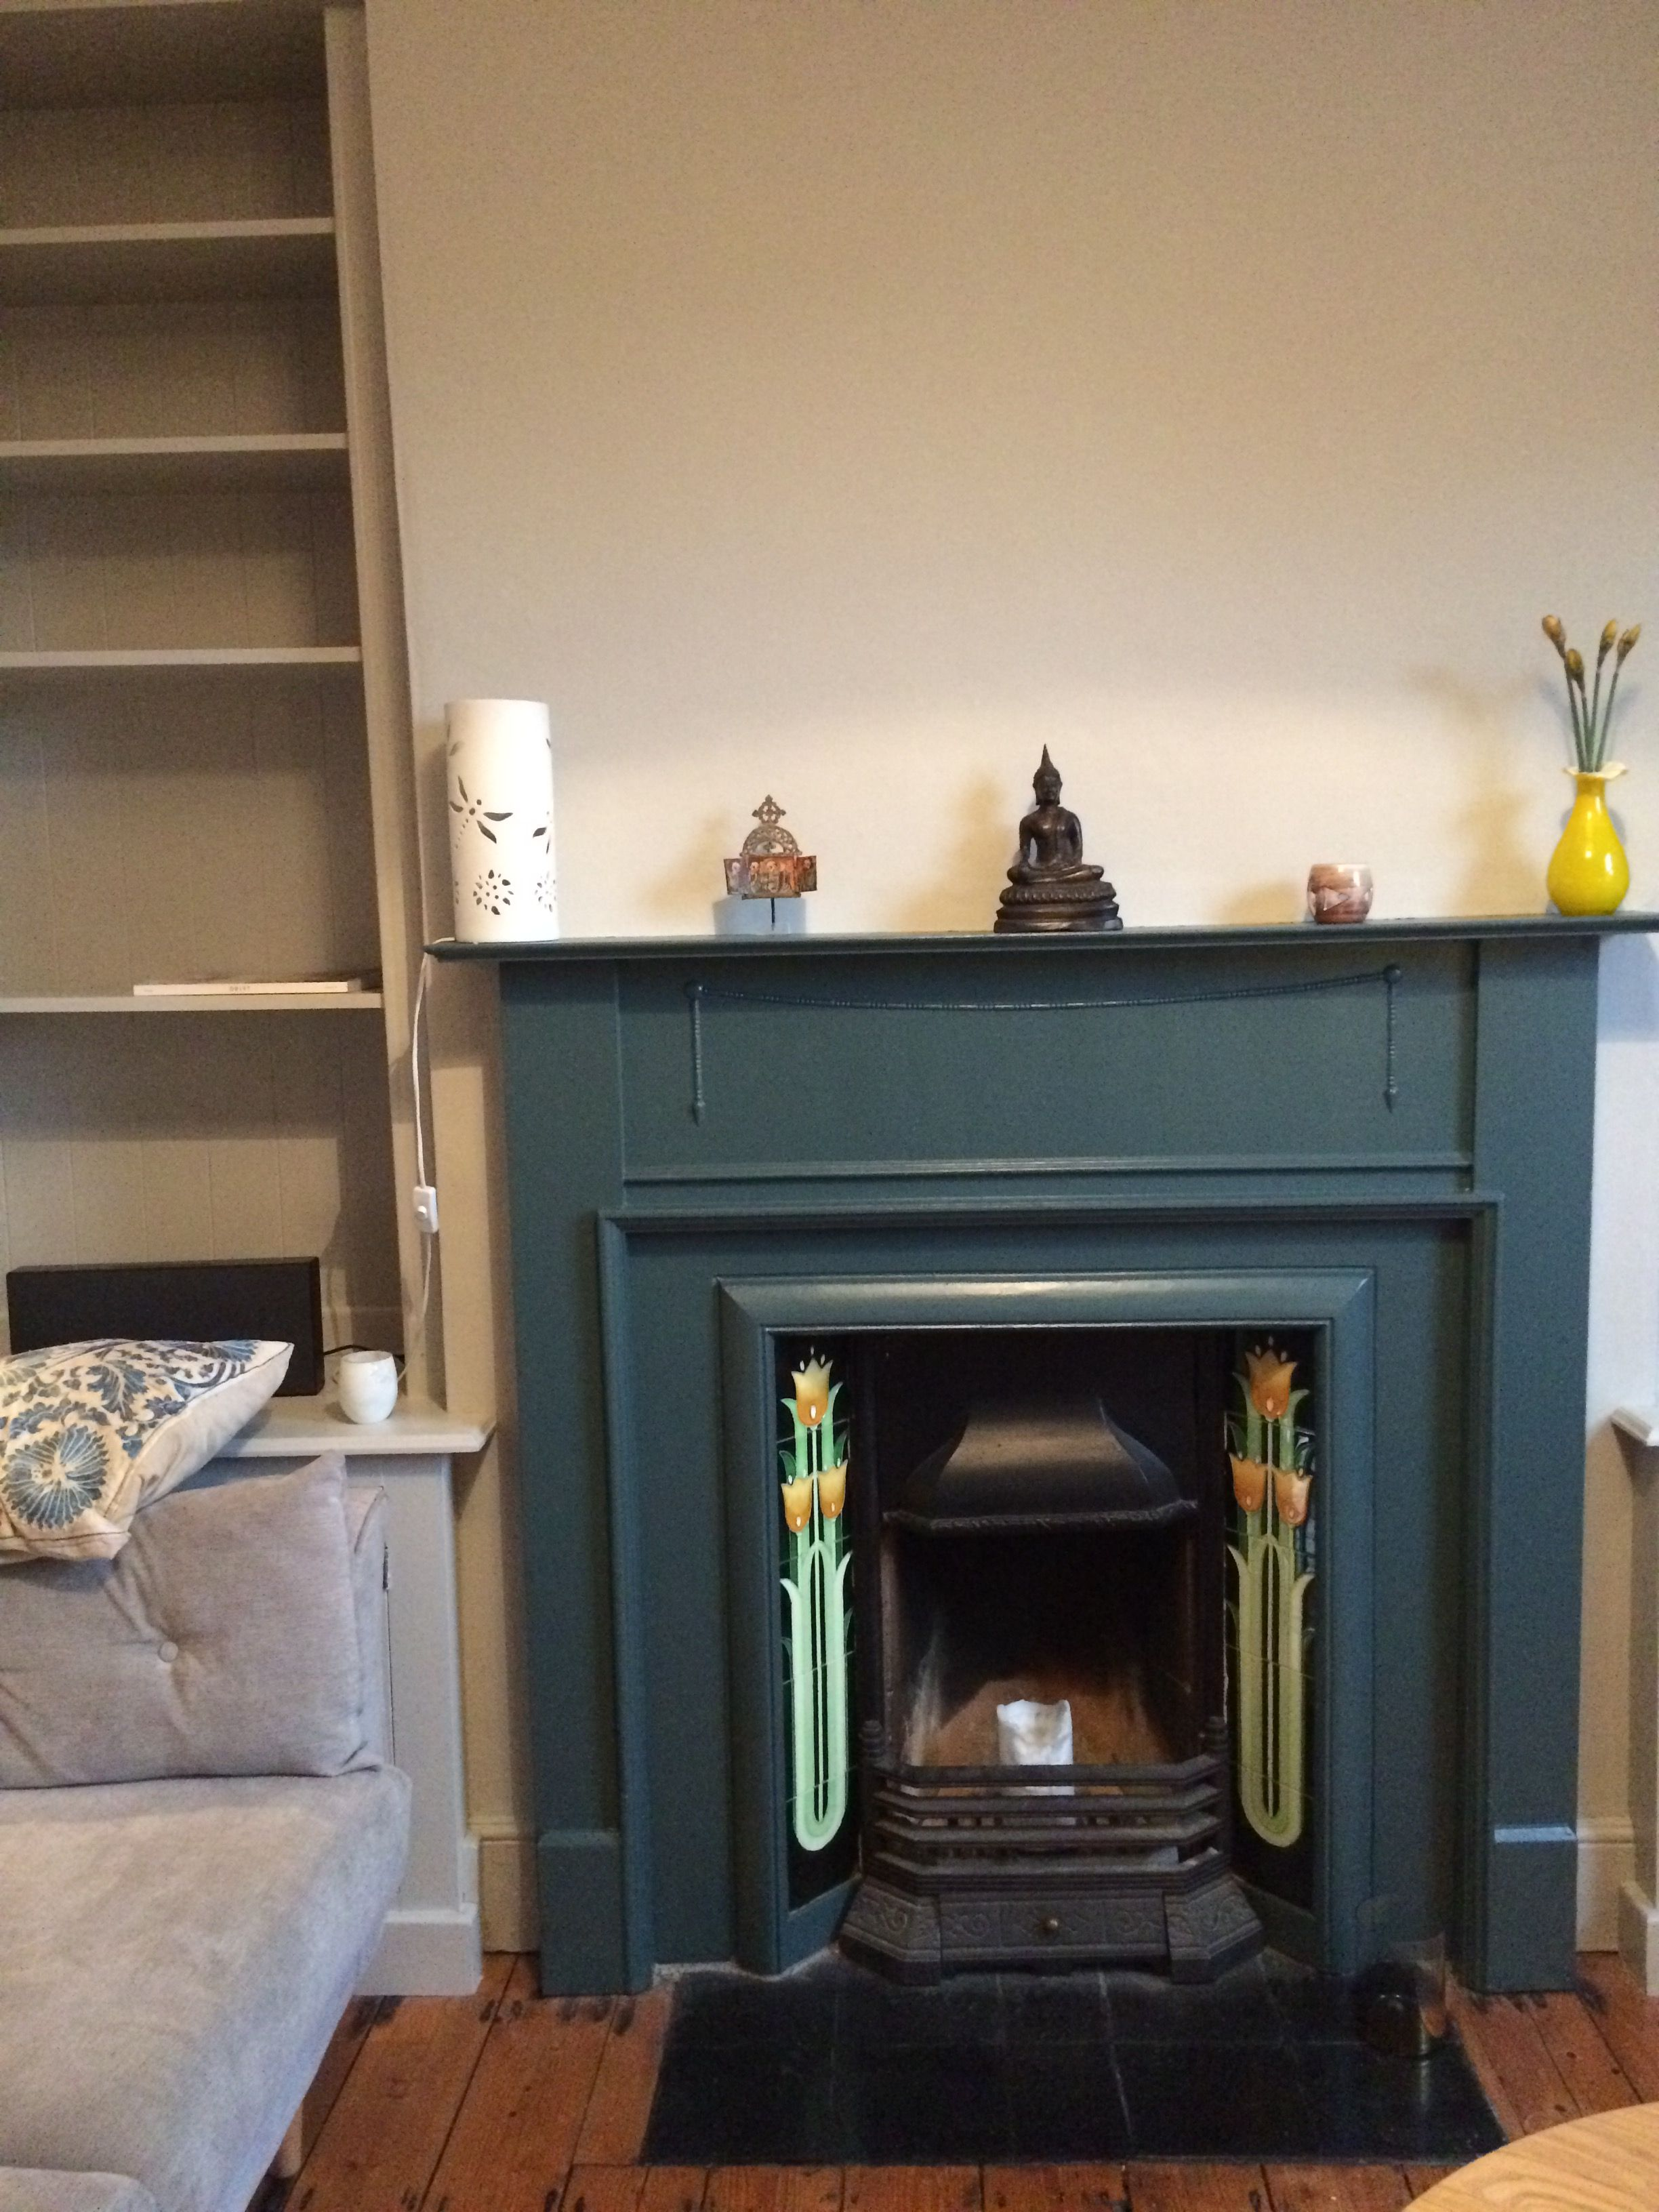 Inchyra Blue Fireplace Farrowandball Living Room Interior Apartment Decor Interior Design